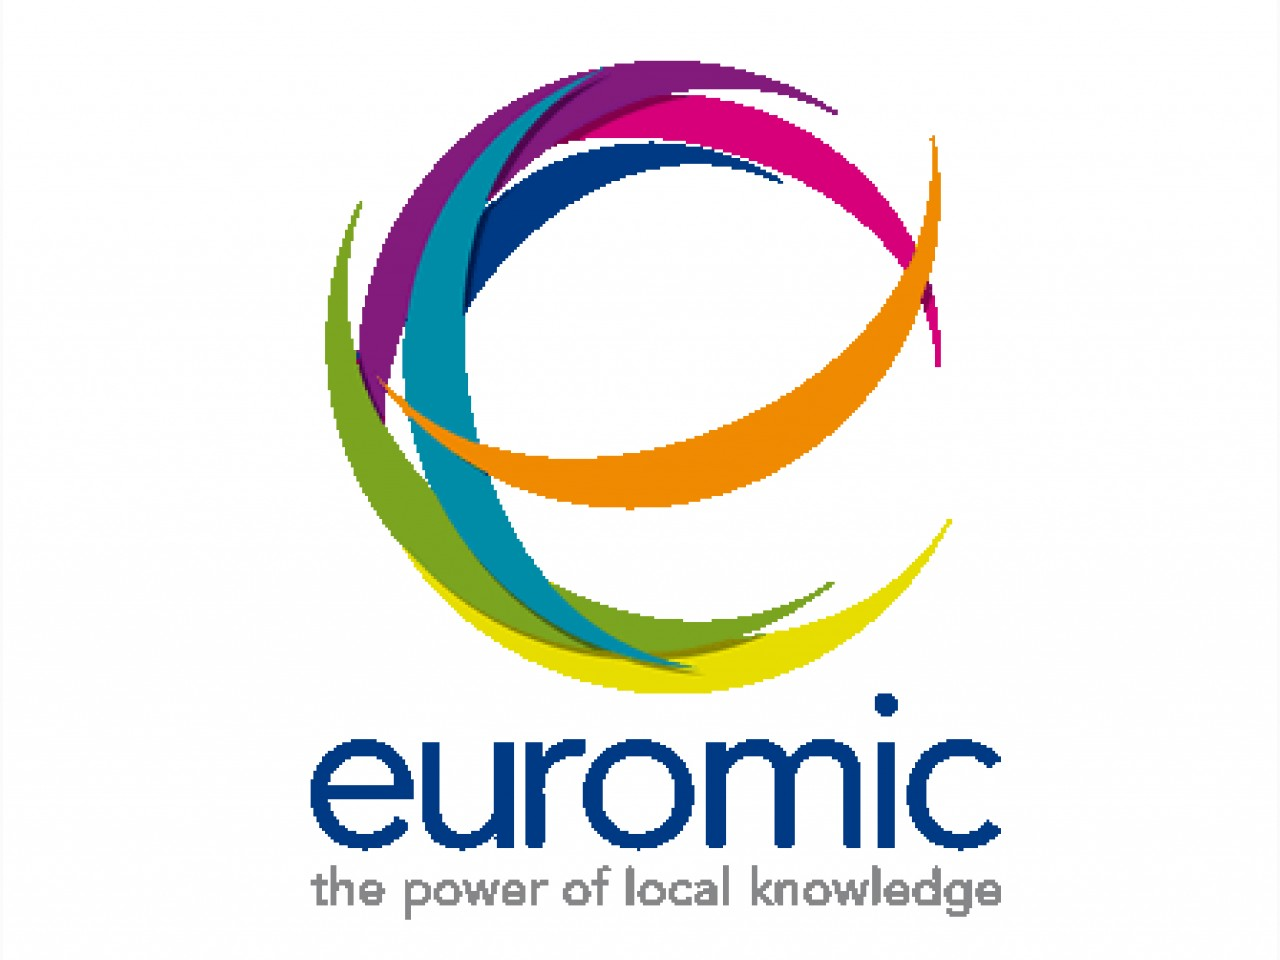 euromic announce Cashel Travel as their newest member